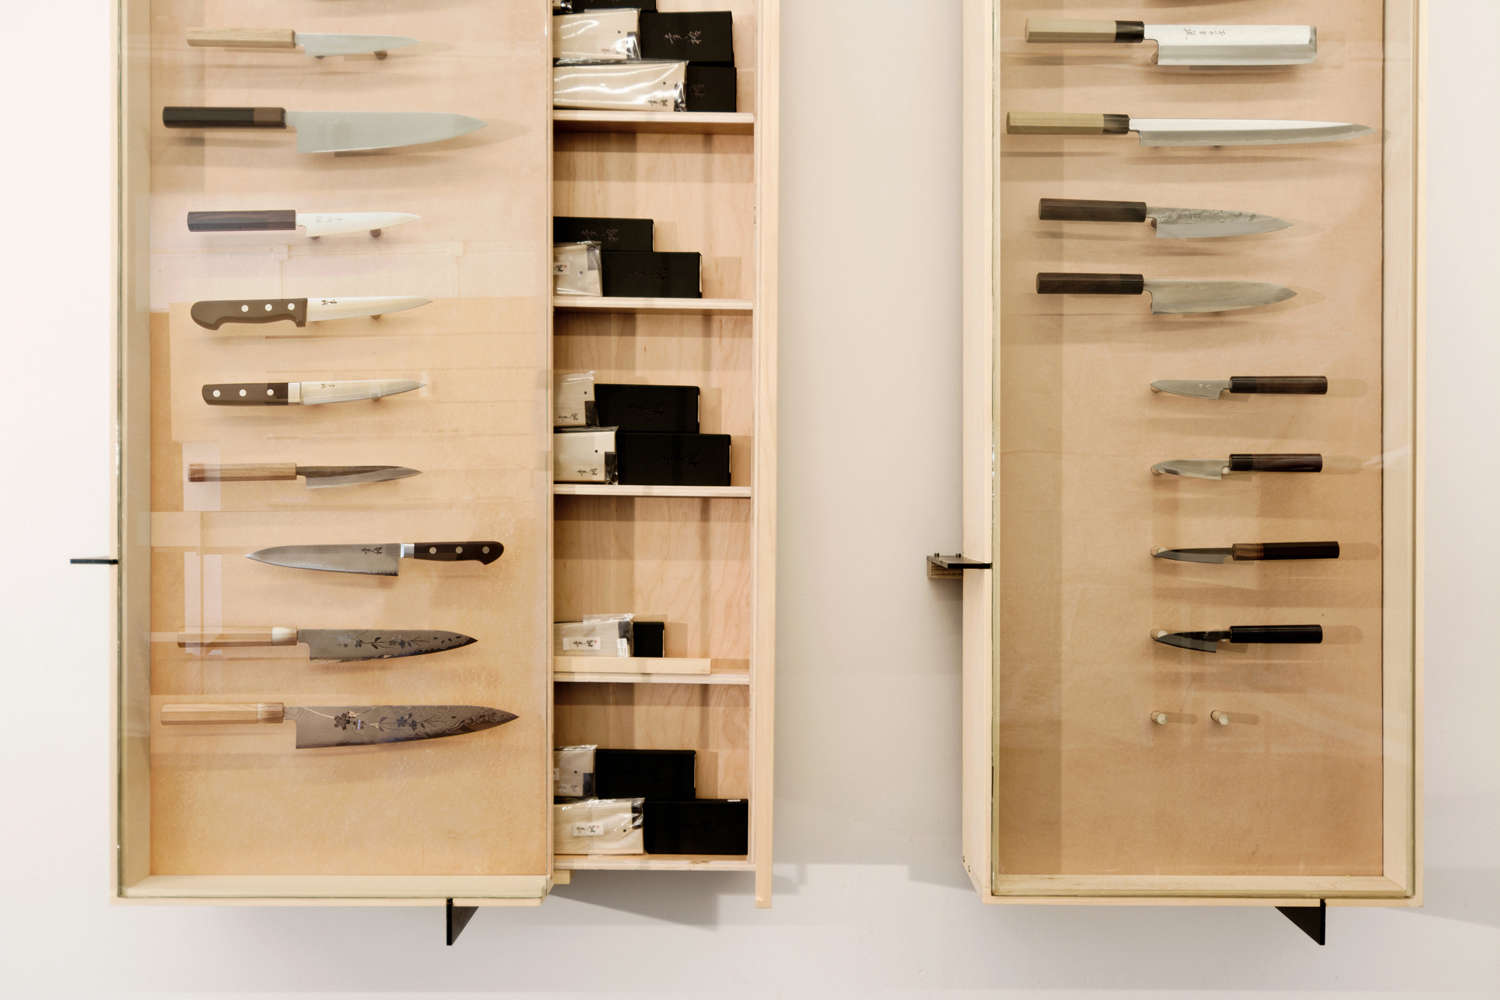 Display Case in Ai and Om Knife Shop by Scott and Scott Architects